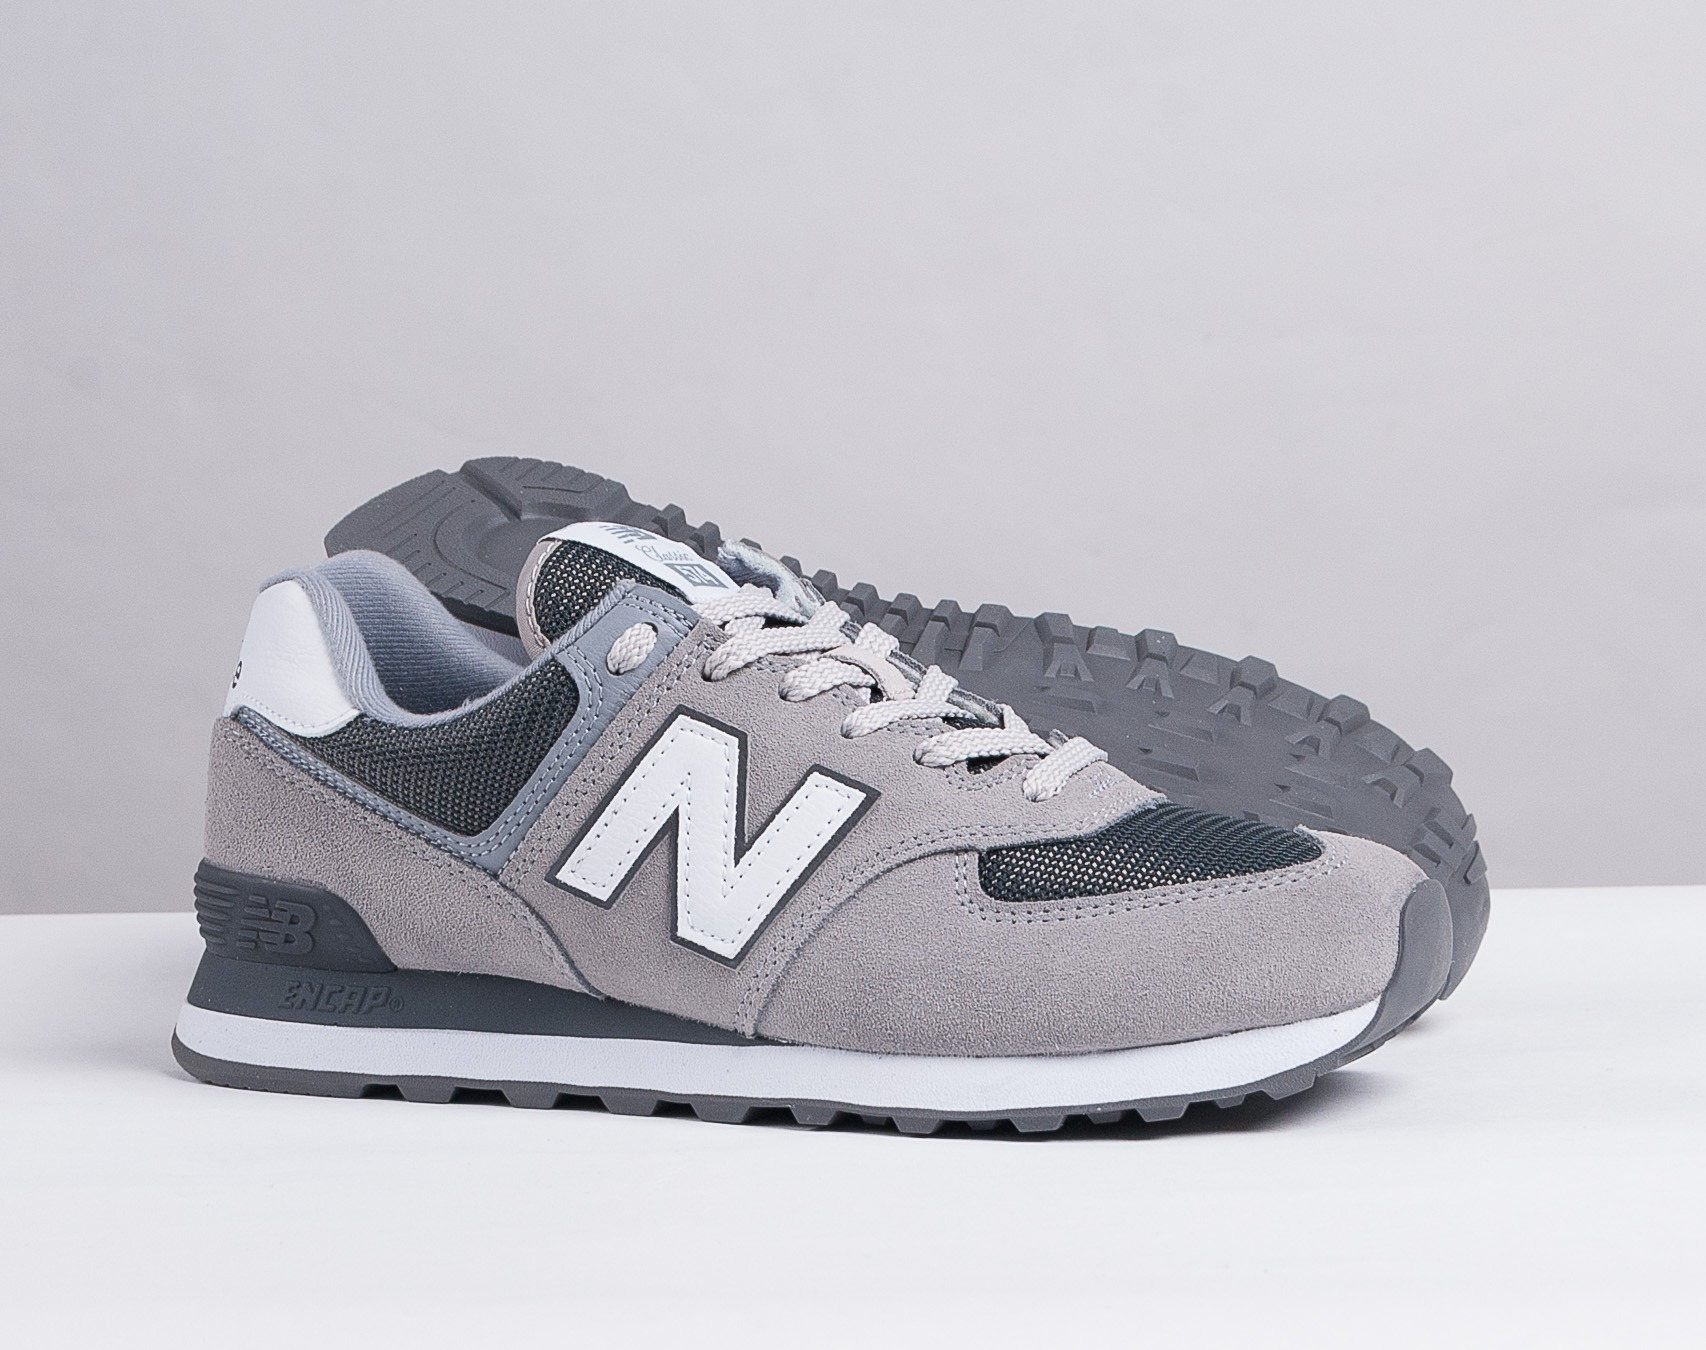 New Balance 574 Chaussures Pour Homme Gris